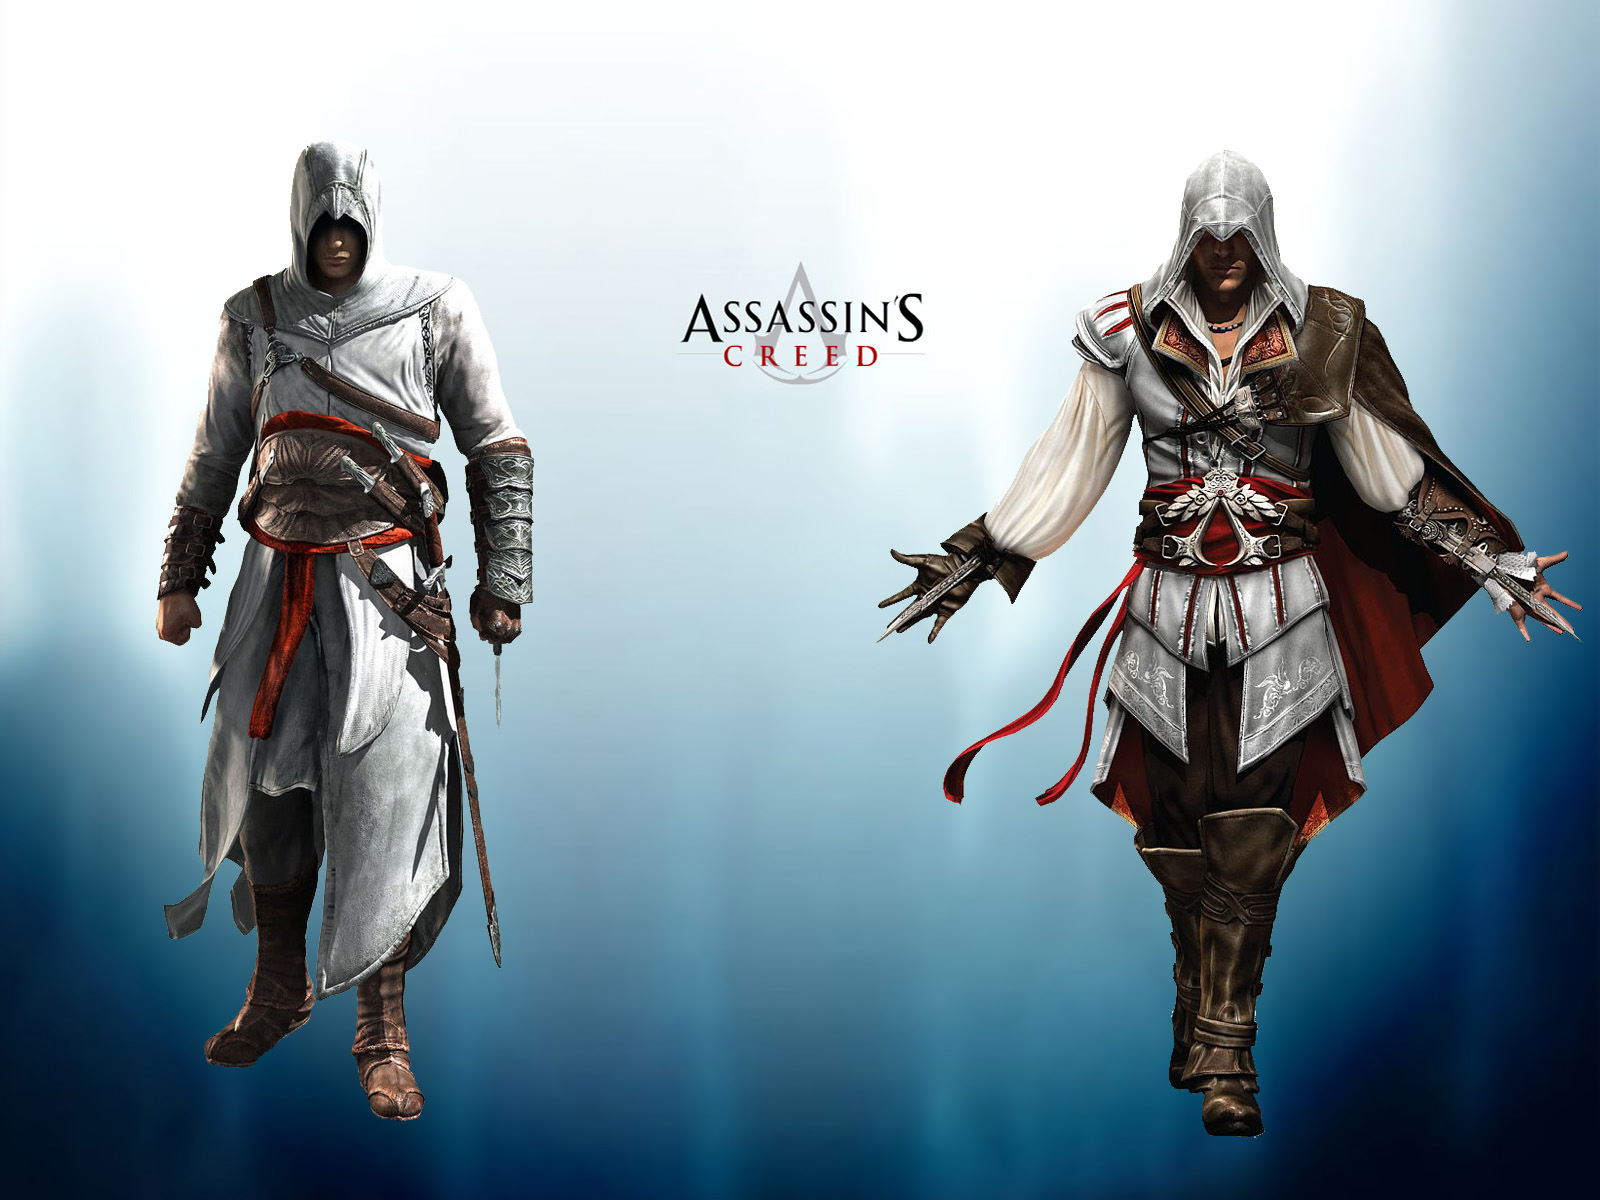 Ezio (Assassins Creed battle)